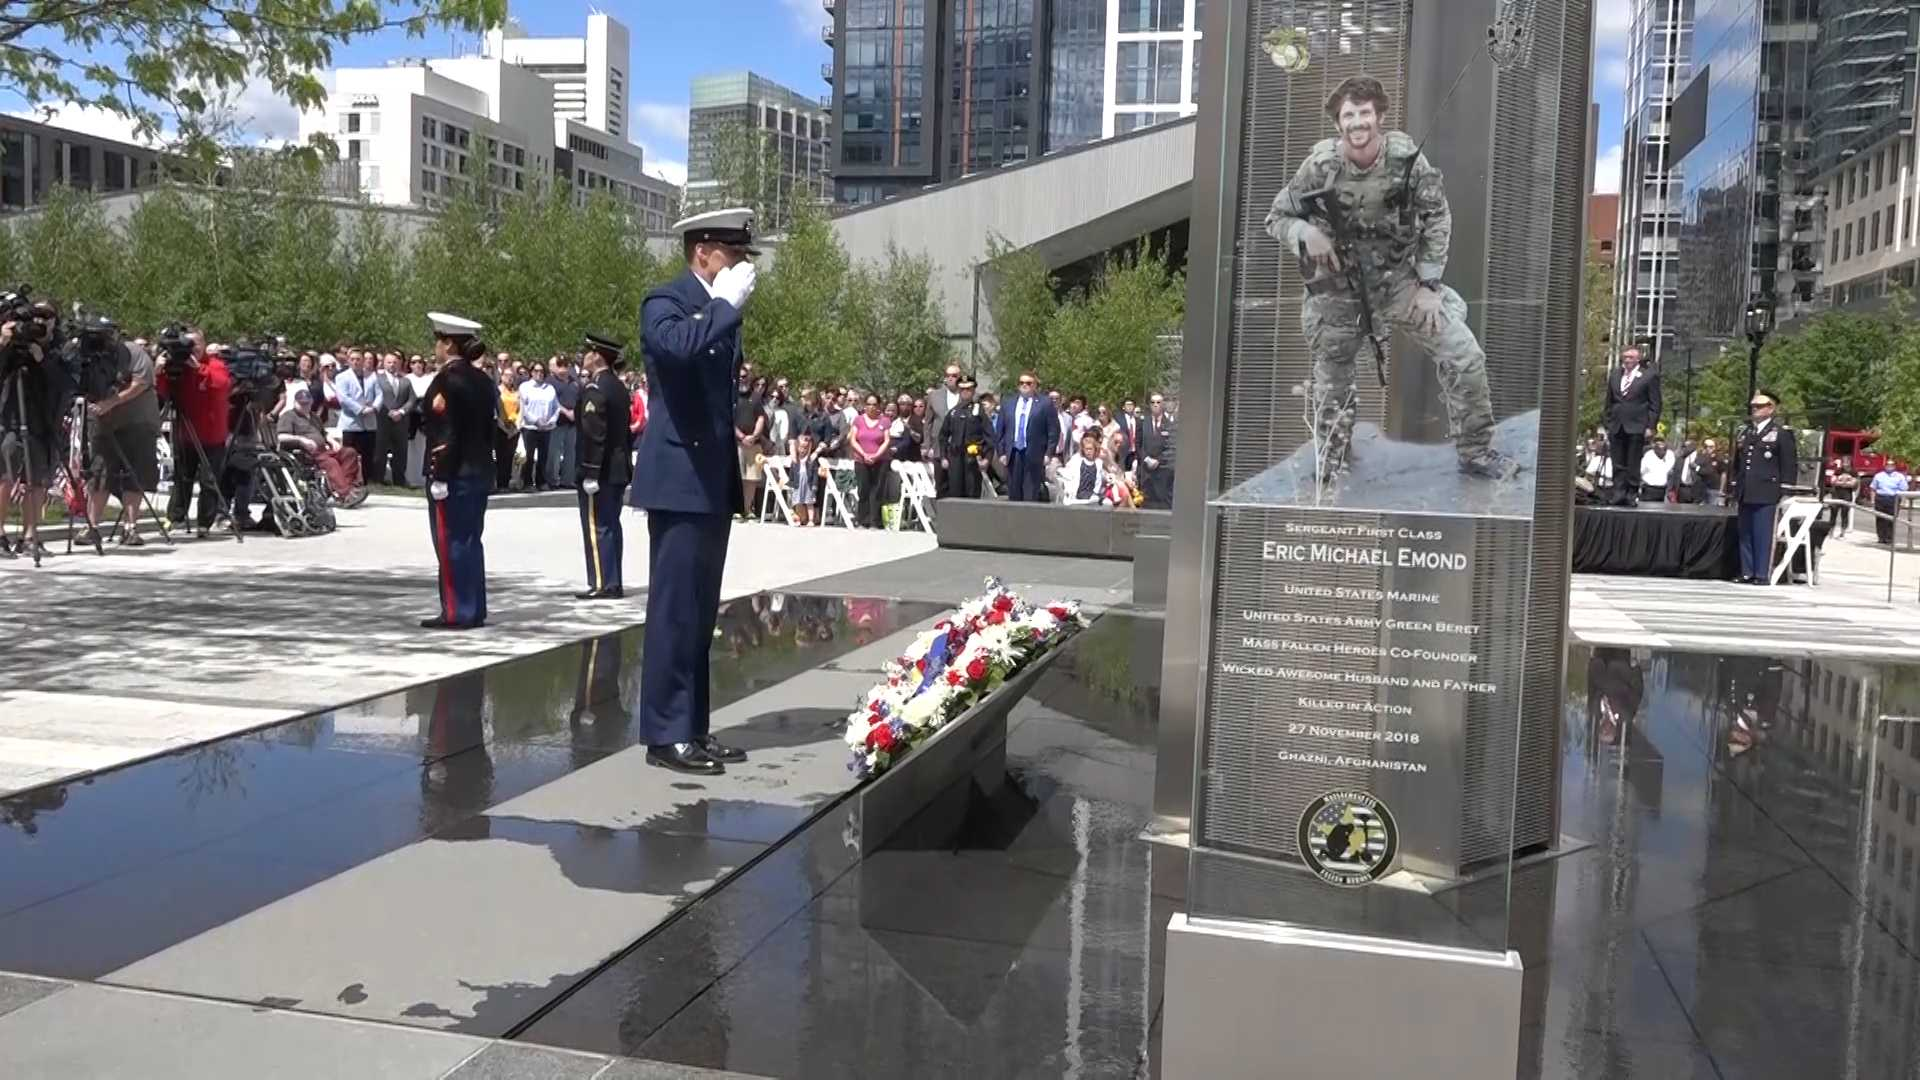 Fallen soldier honored at memorial he co-founded